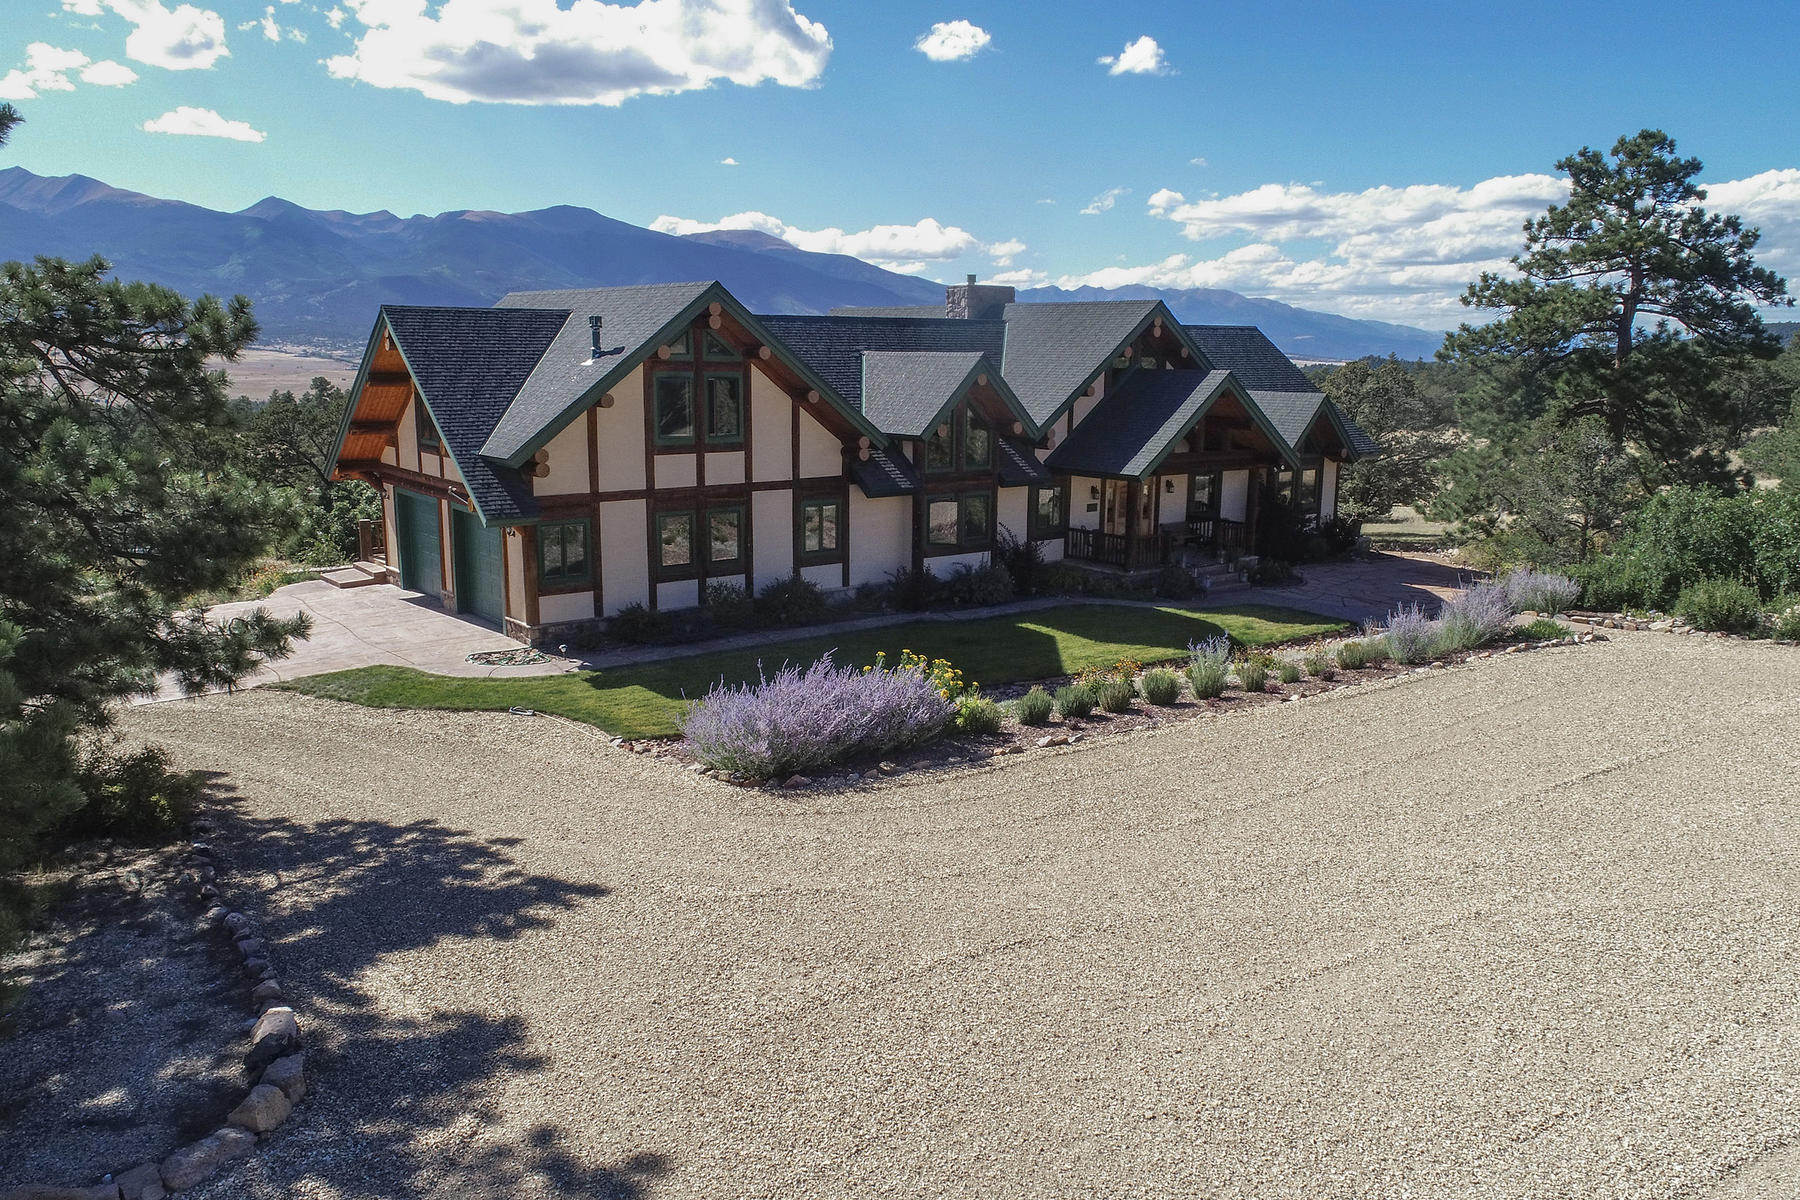 Single Family Homes のために 売買 アット Sangre de Cristo Mountains Home 2600 Pheasant Loop Westcliffe, コロラド 81252 アメリカ